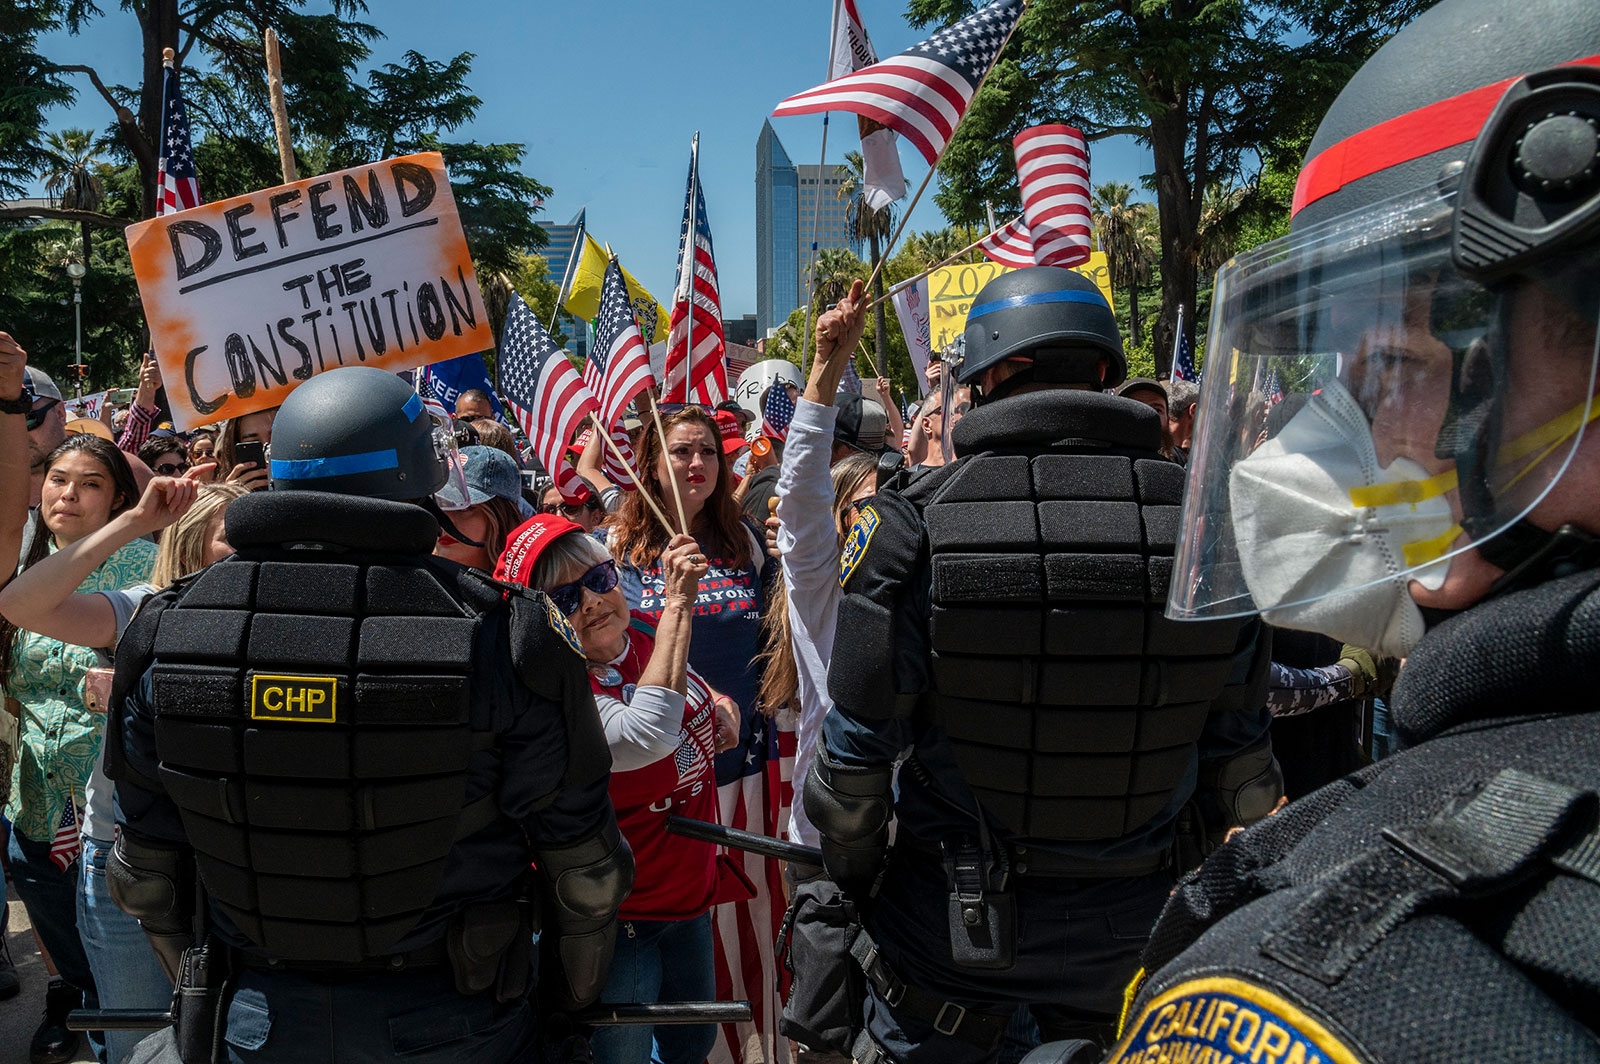 More than 30 people were arrested on Friday, May 1, 2020, during a demonstration at the California Capitol Building.